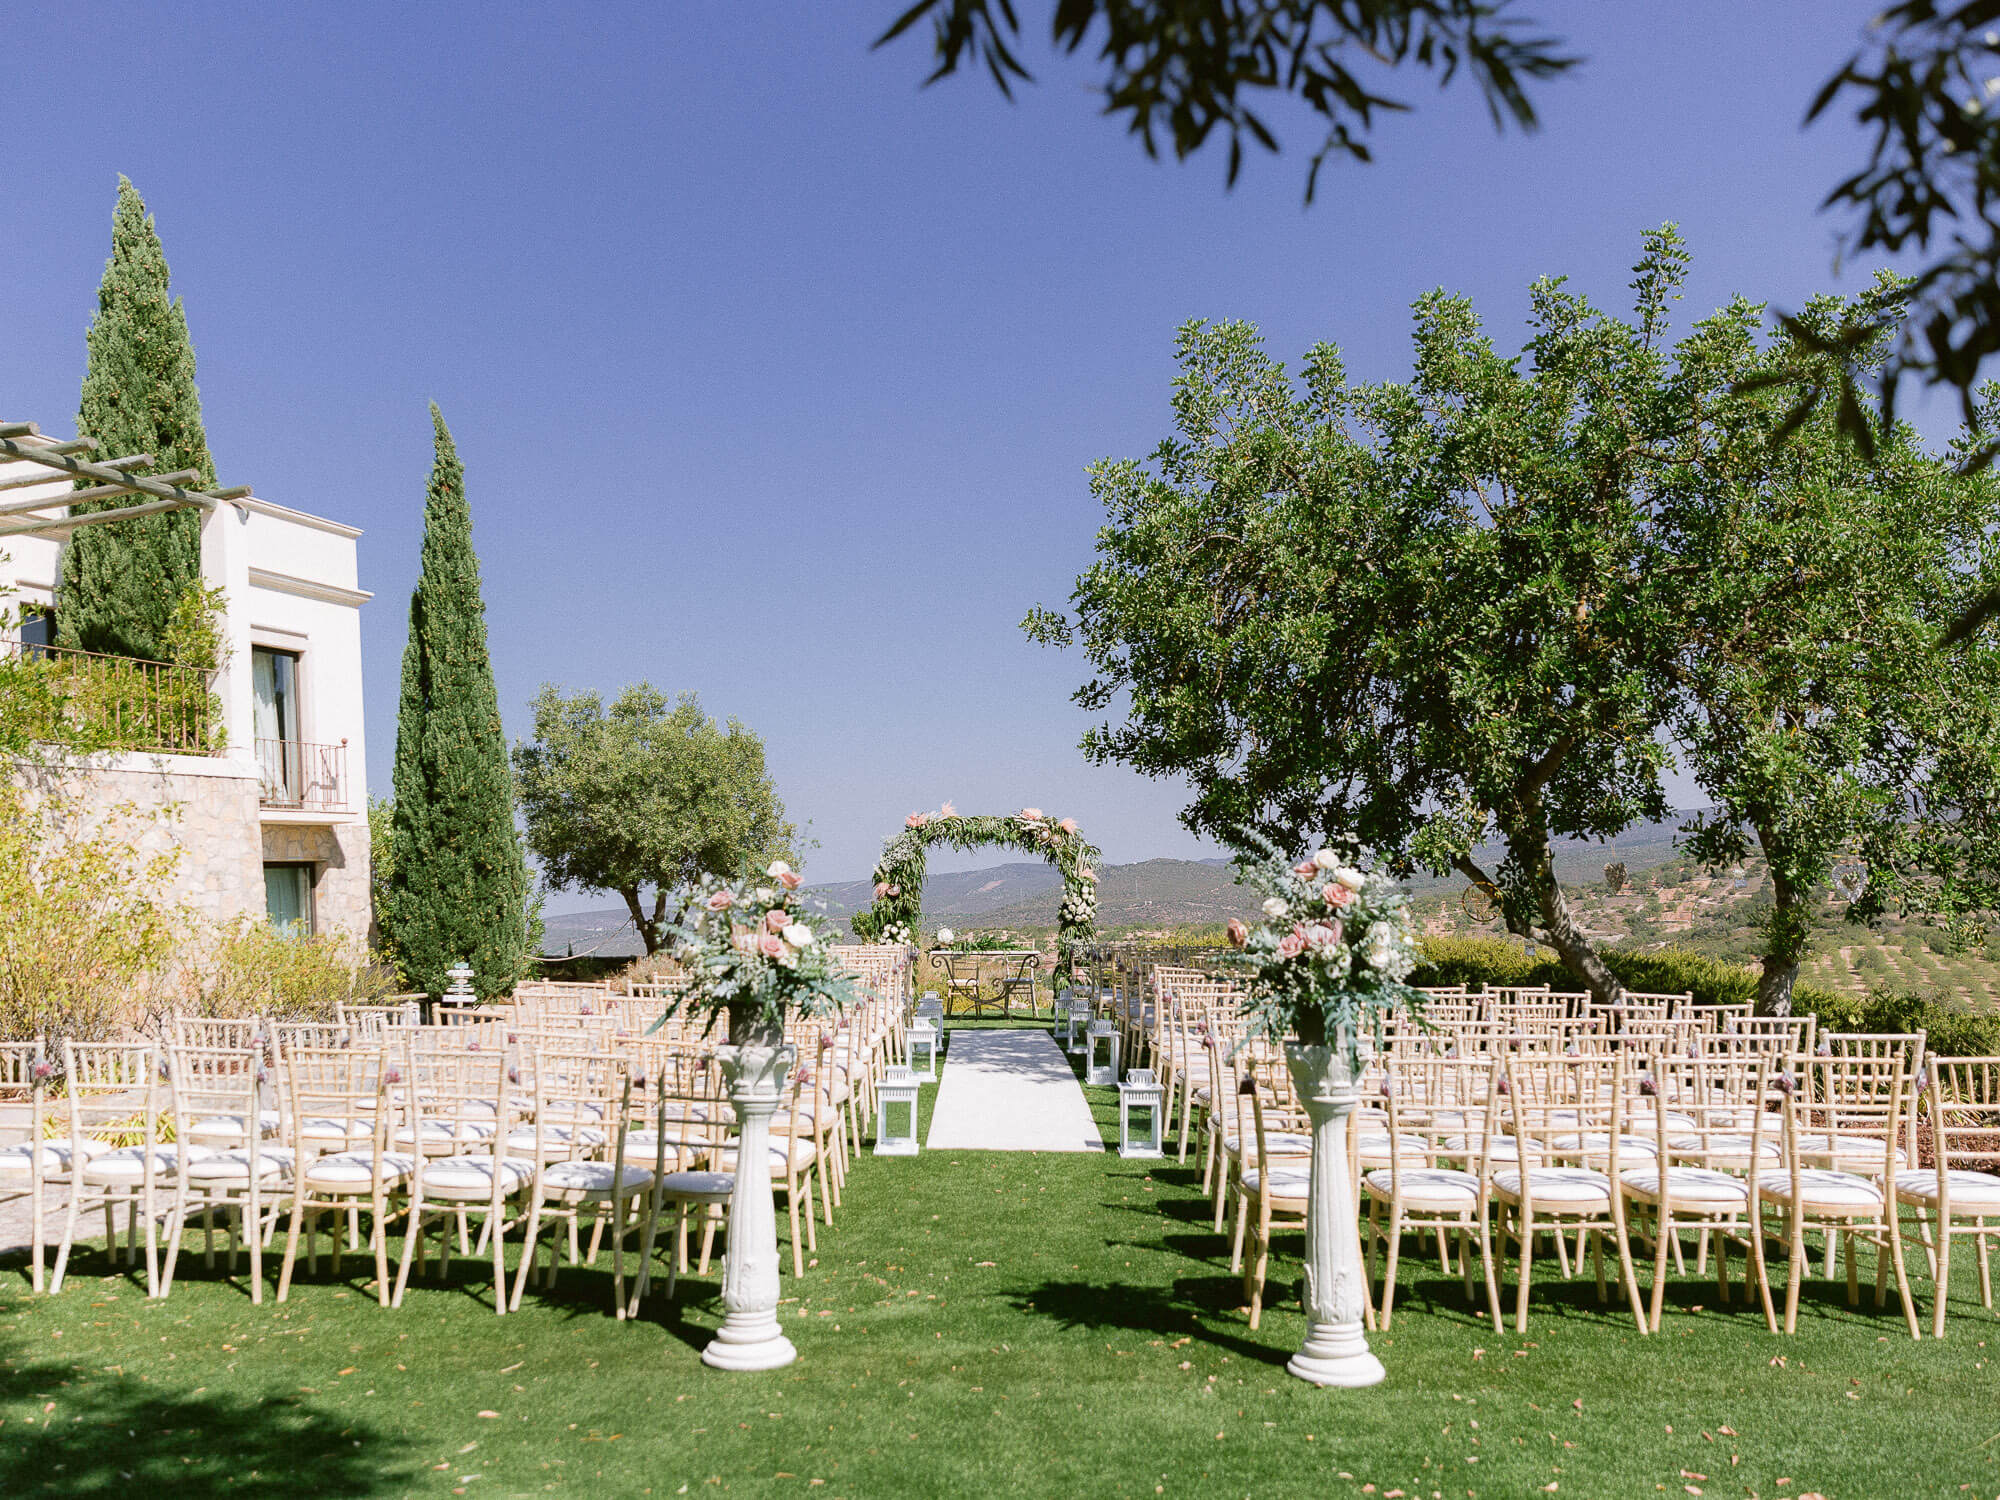 Wedding ceremony setting with floral arch for a destination wedding in the Algarve by Portugal Wedding Photographer